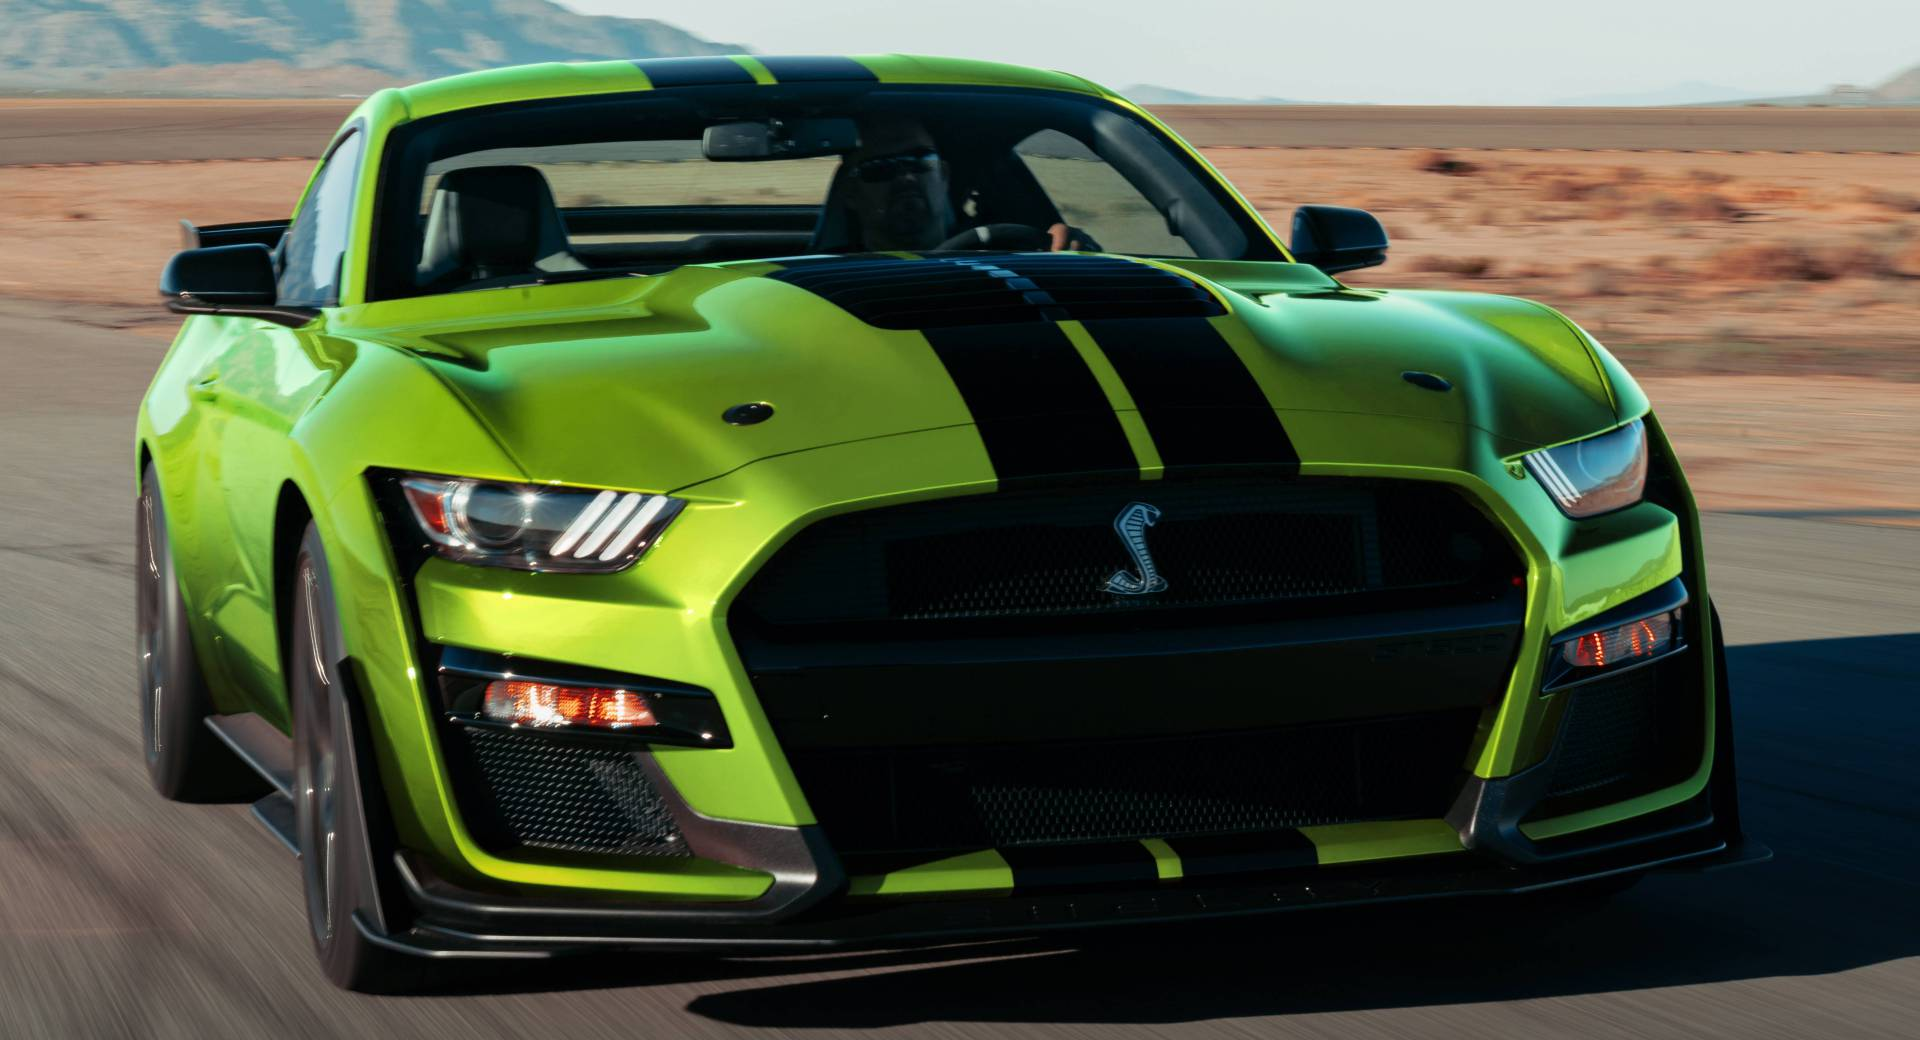 2020 ford mustang gains grabber lime color in time for st patrick s day carscoops. Black Bedroom Furniture Sets. Home Design Ideas